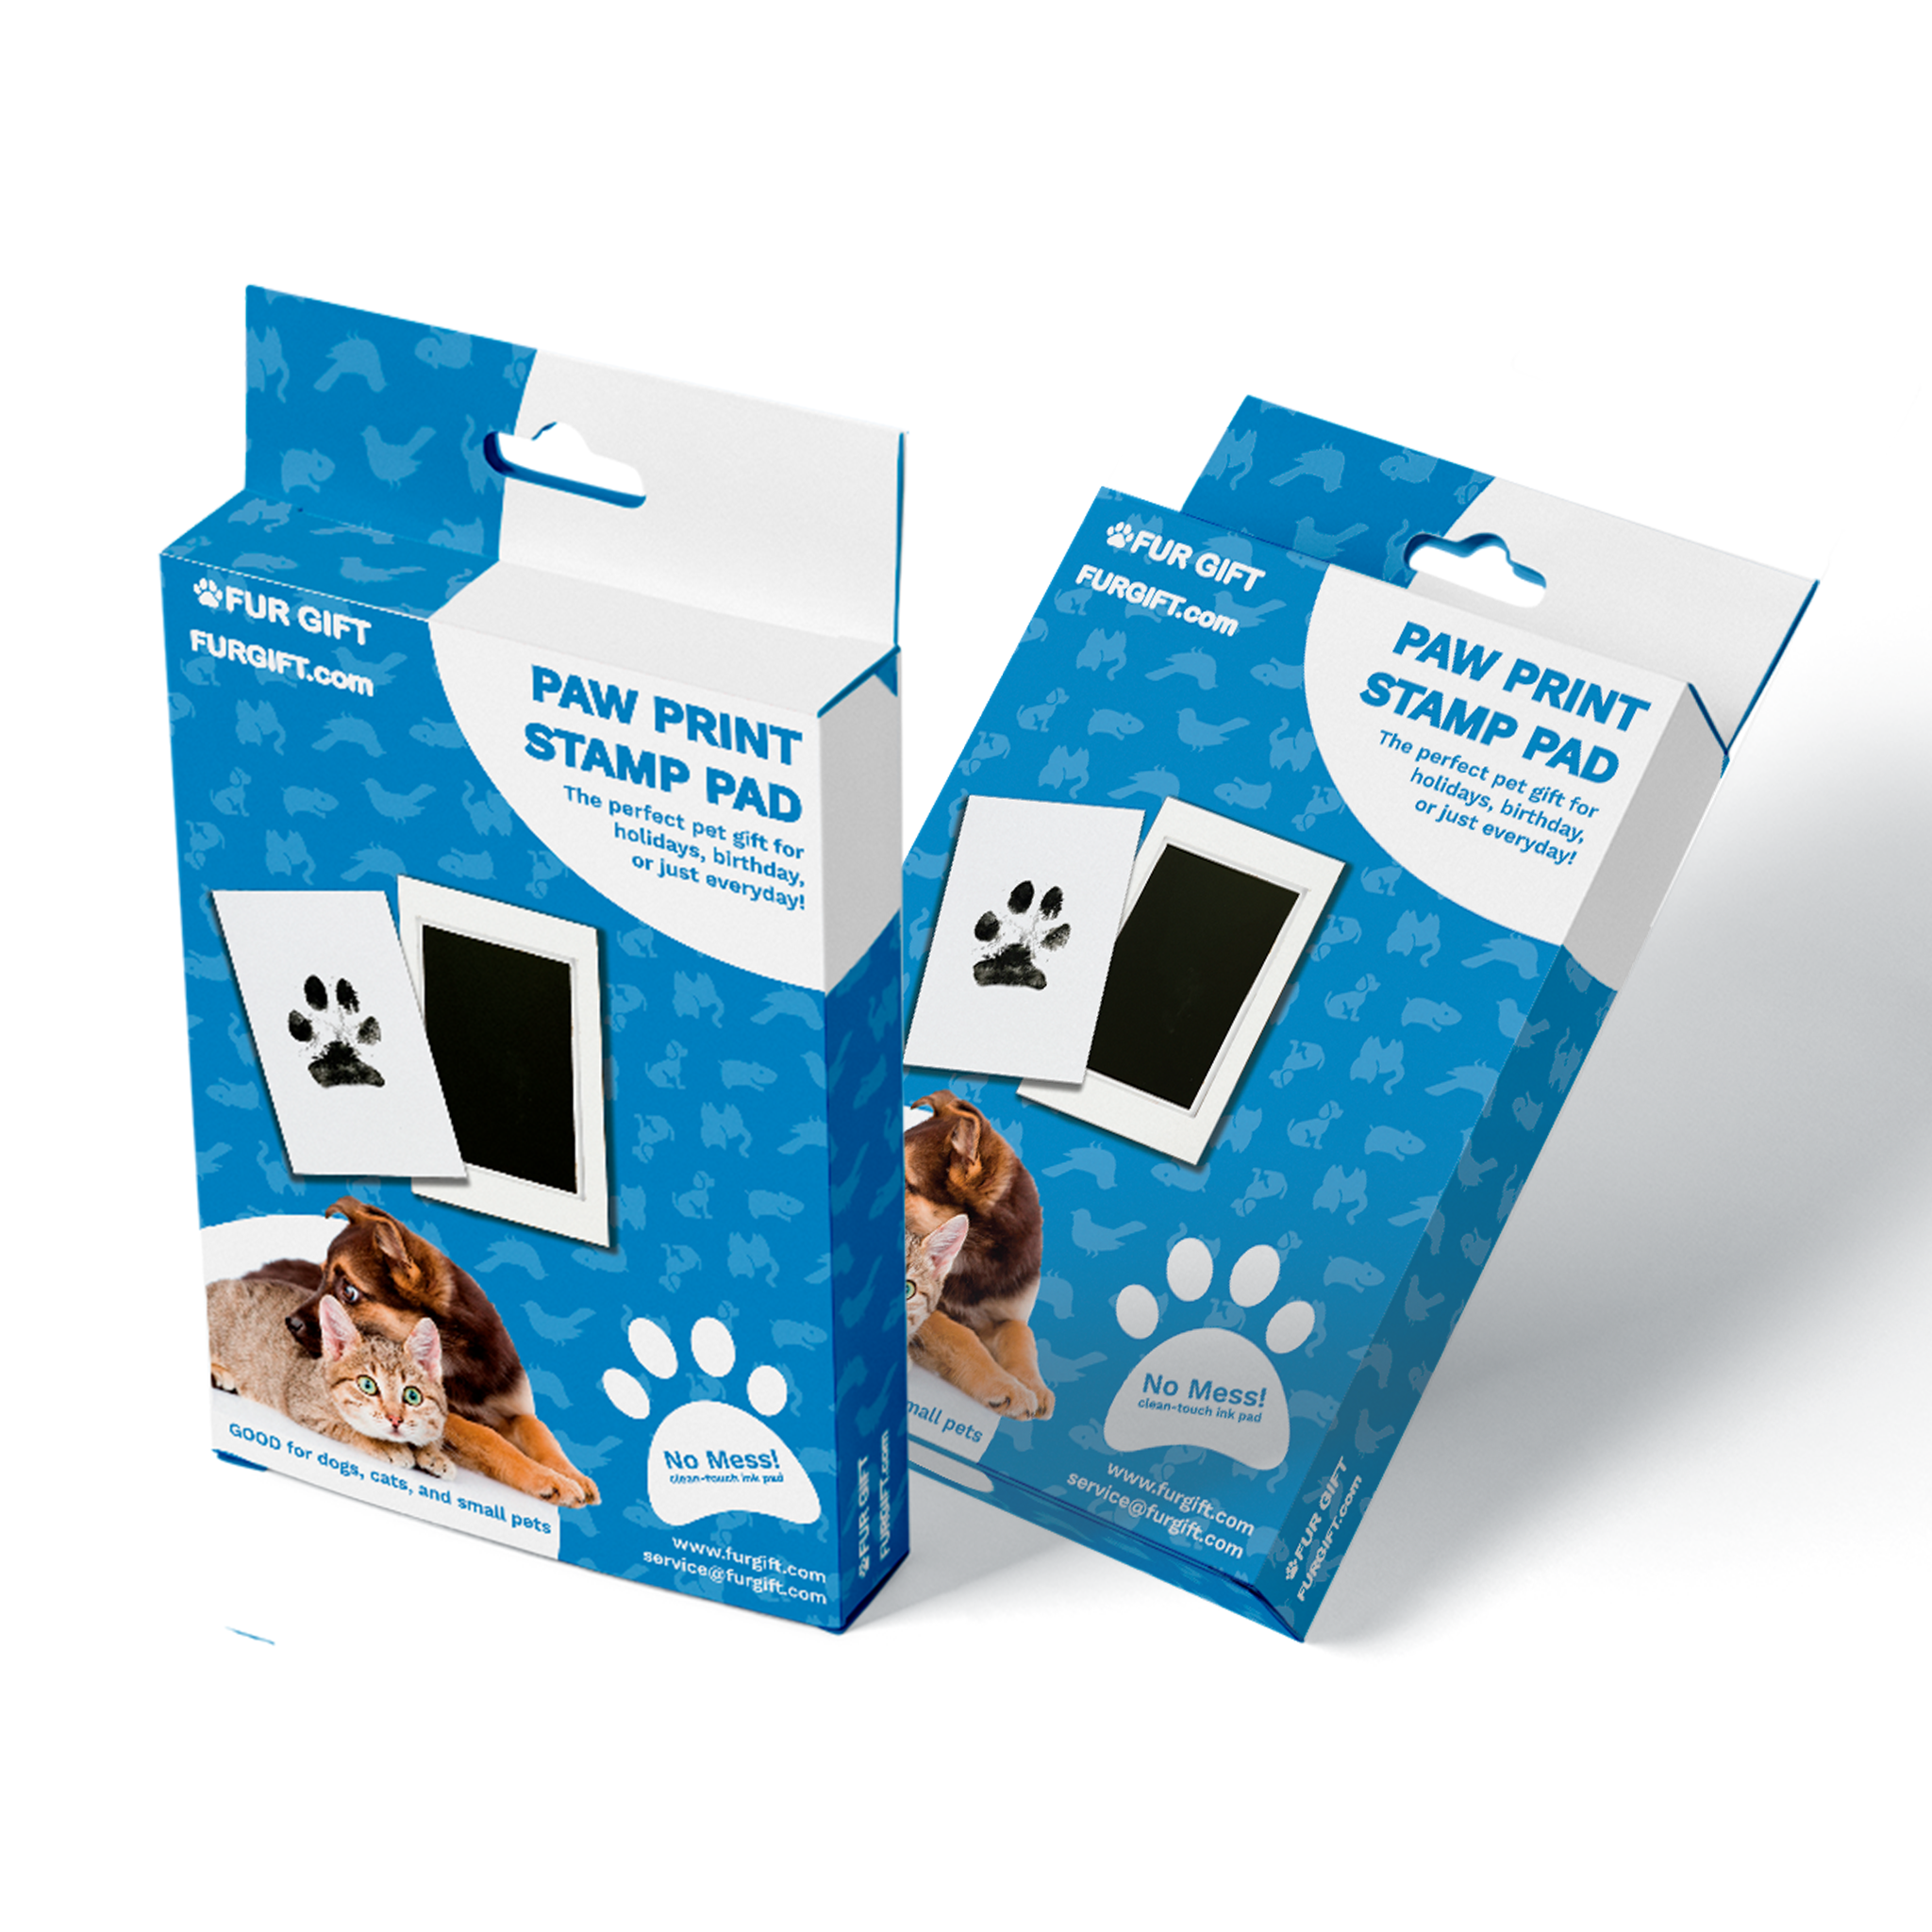 2 Pack Of Paw Print Stamp Pads Walmart Com Walmart Com With the lowest prices online, cheap shipping rates and. 2 pack of paw print stamp pads walmart com